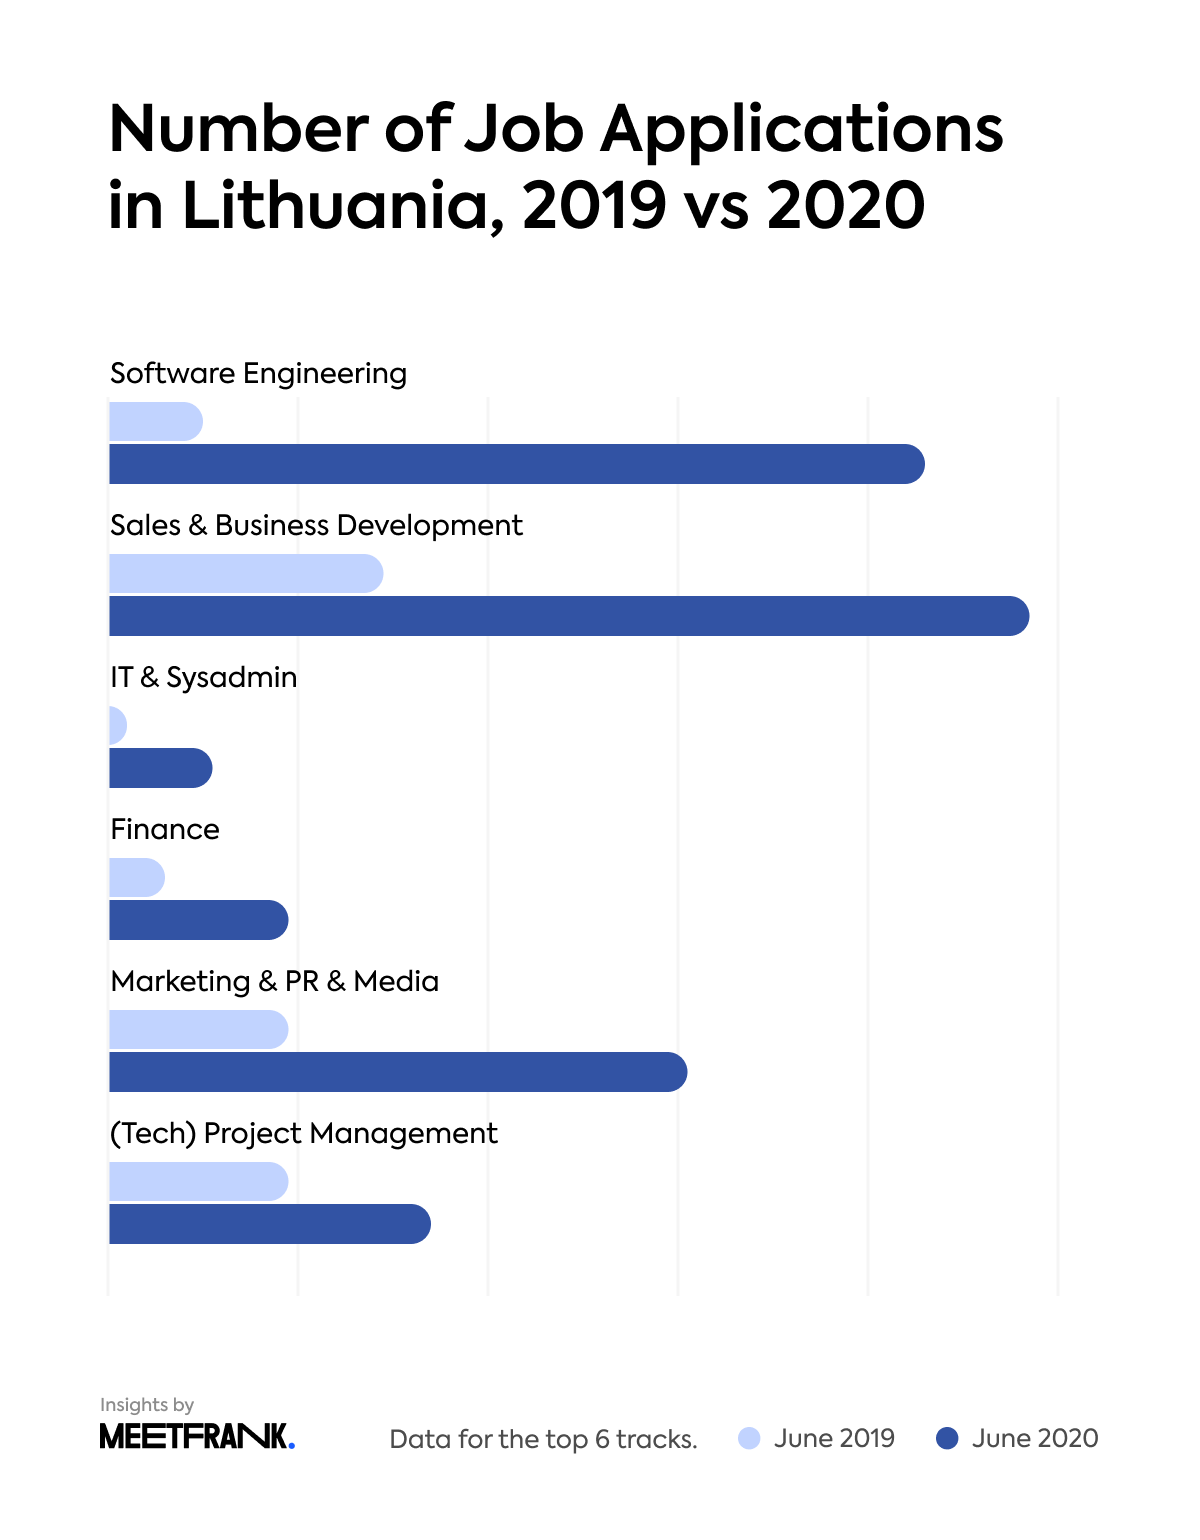 the number of job applications in Lithuania in 2019 vs 2020